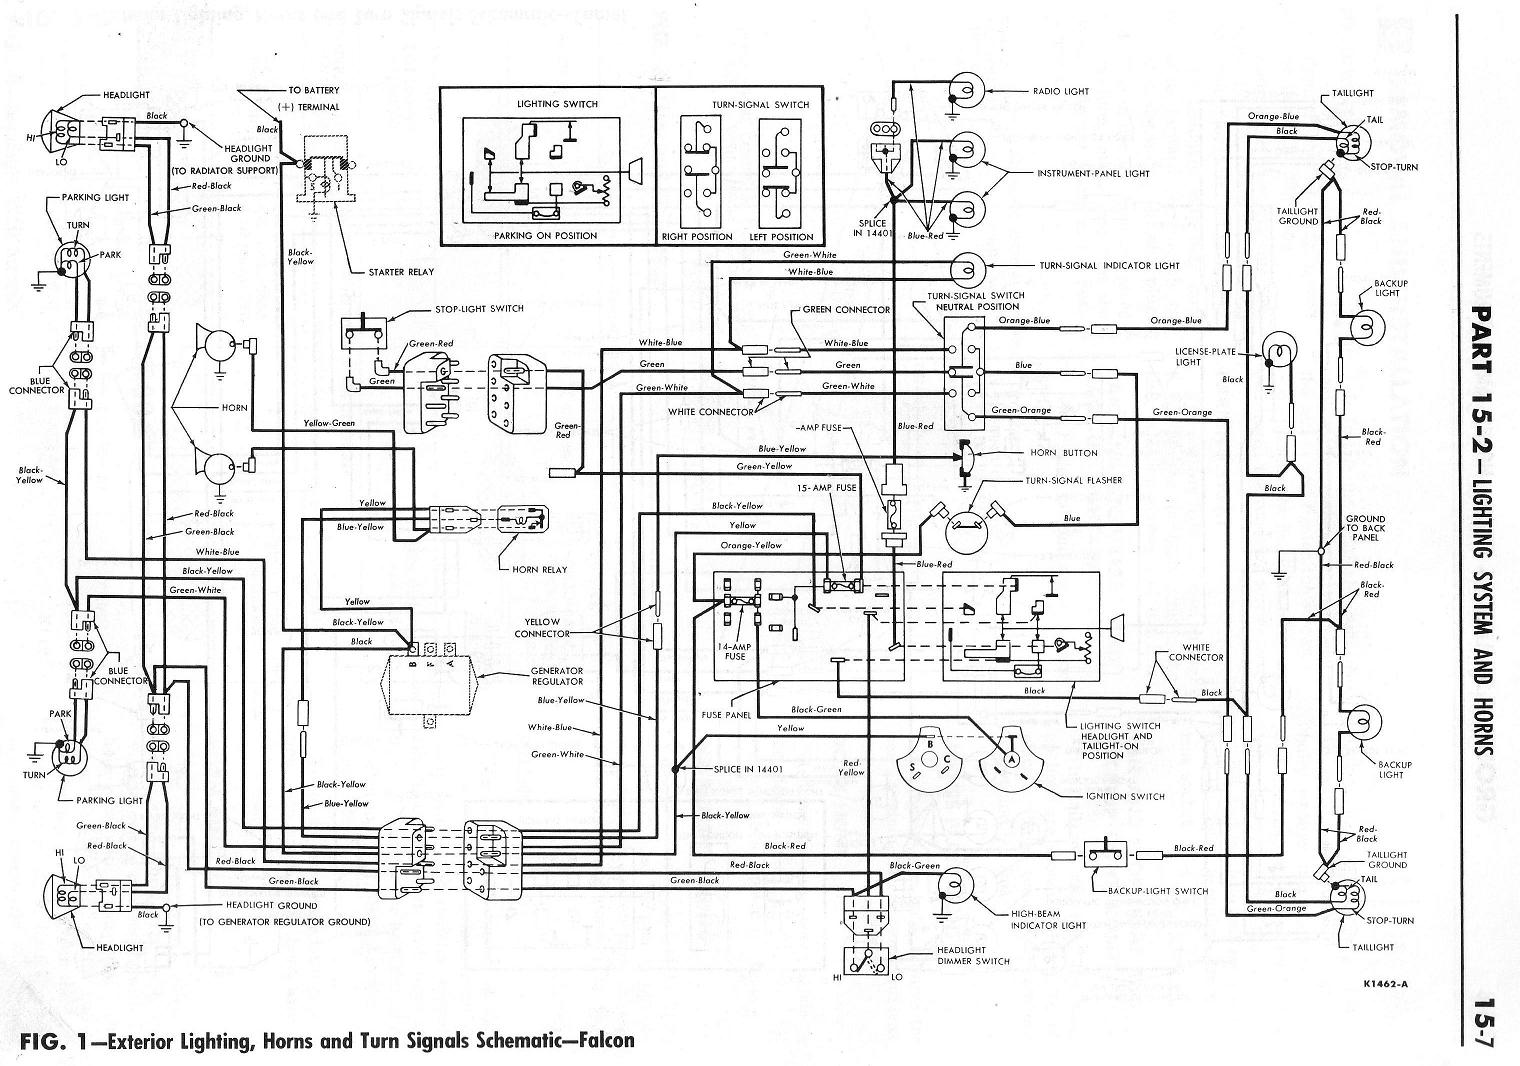 Ford Ba Falcon Wiring Diagram - Wiring Diagram